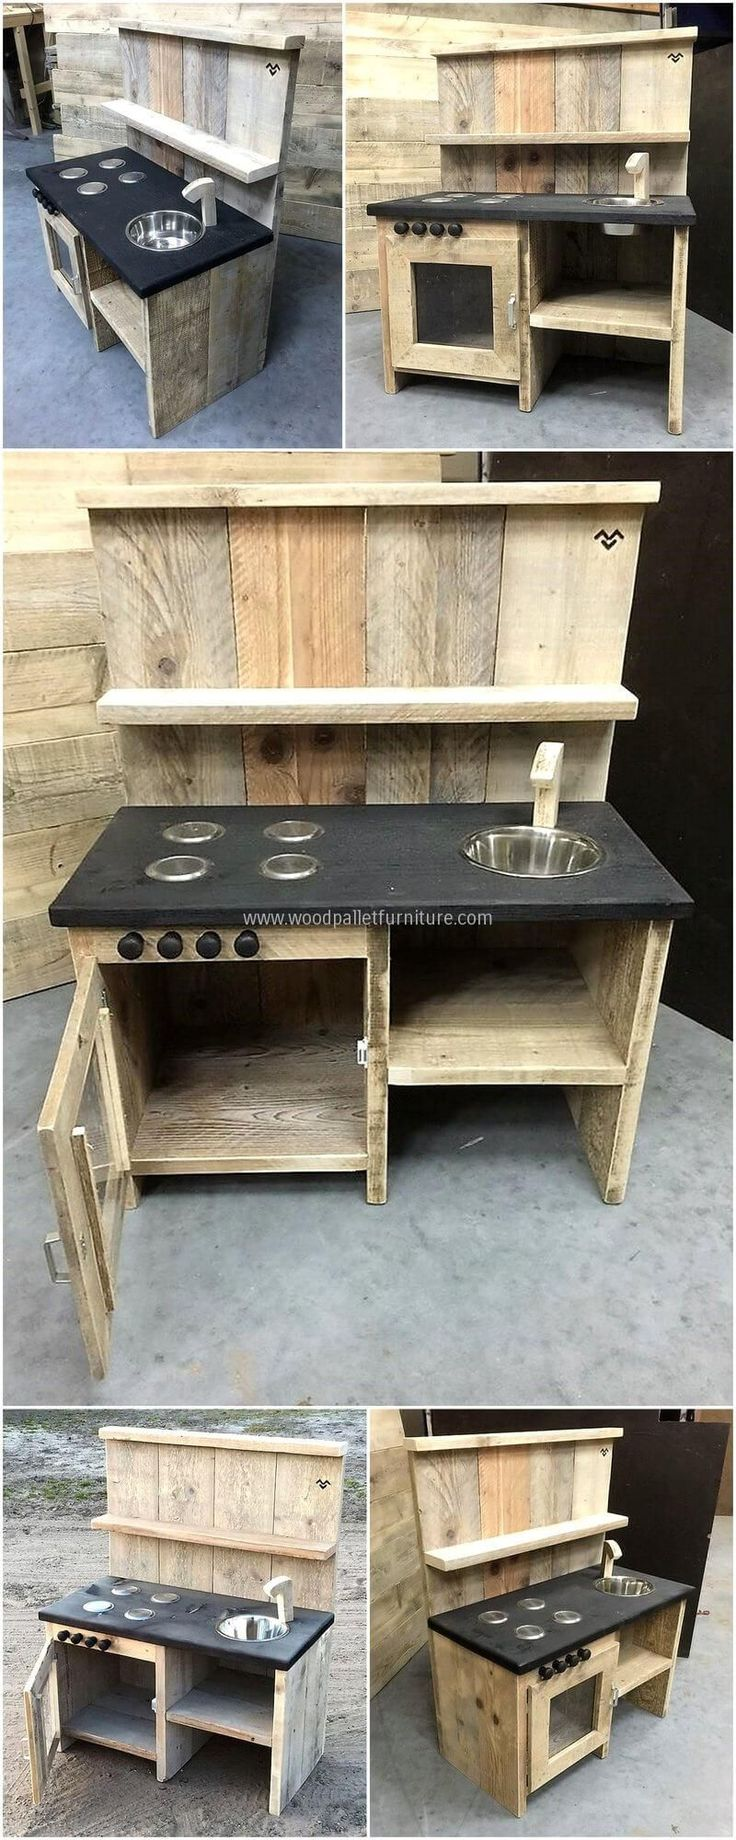 Mud kitchen upcycled pallet mud kitchen pallet kitchen counter with - Creative Creations With Reclaimed Wooden Pallets